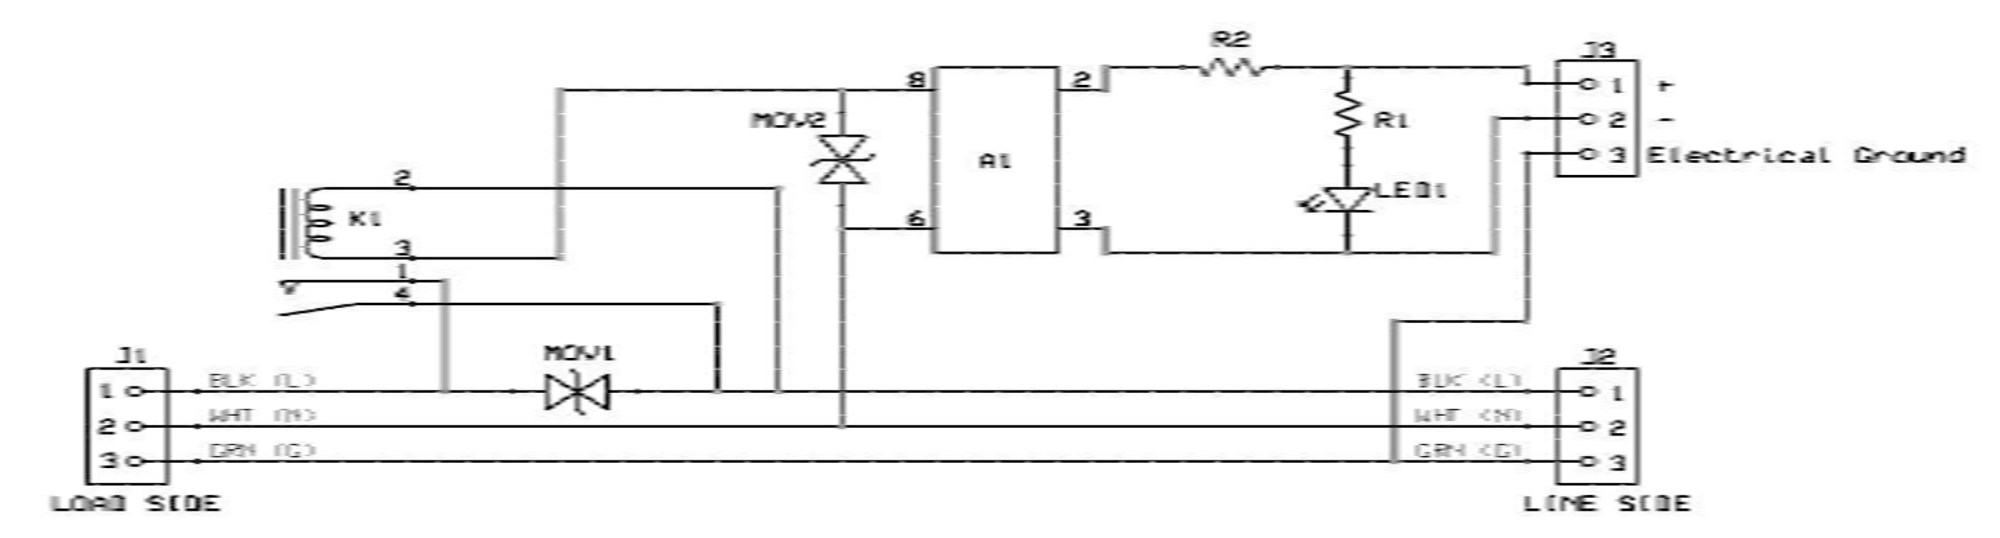 hight resolution of power switch tail ii schematic